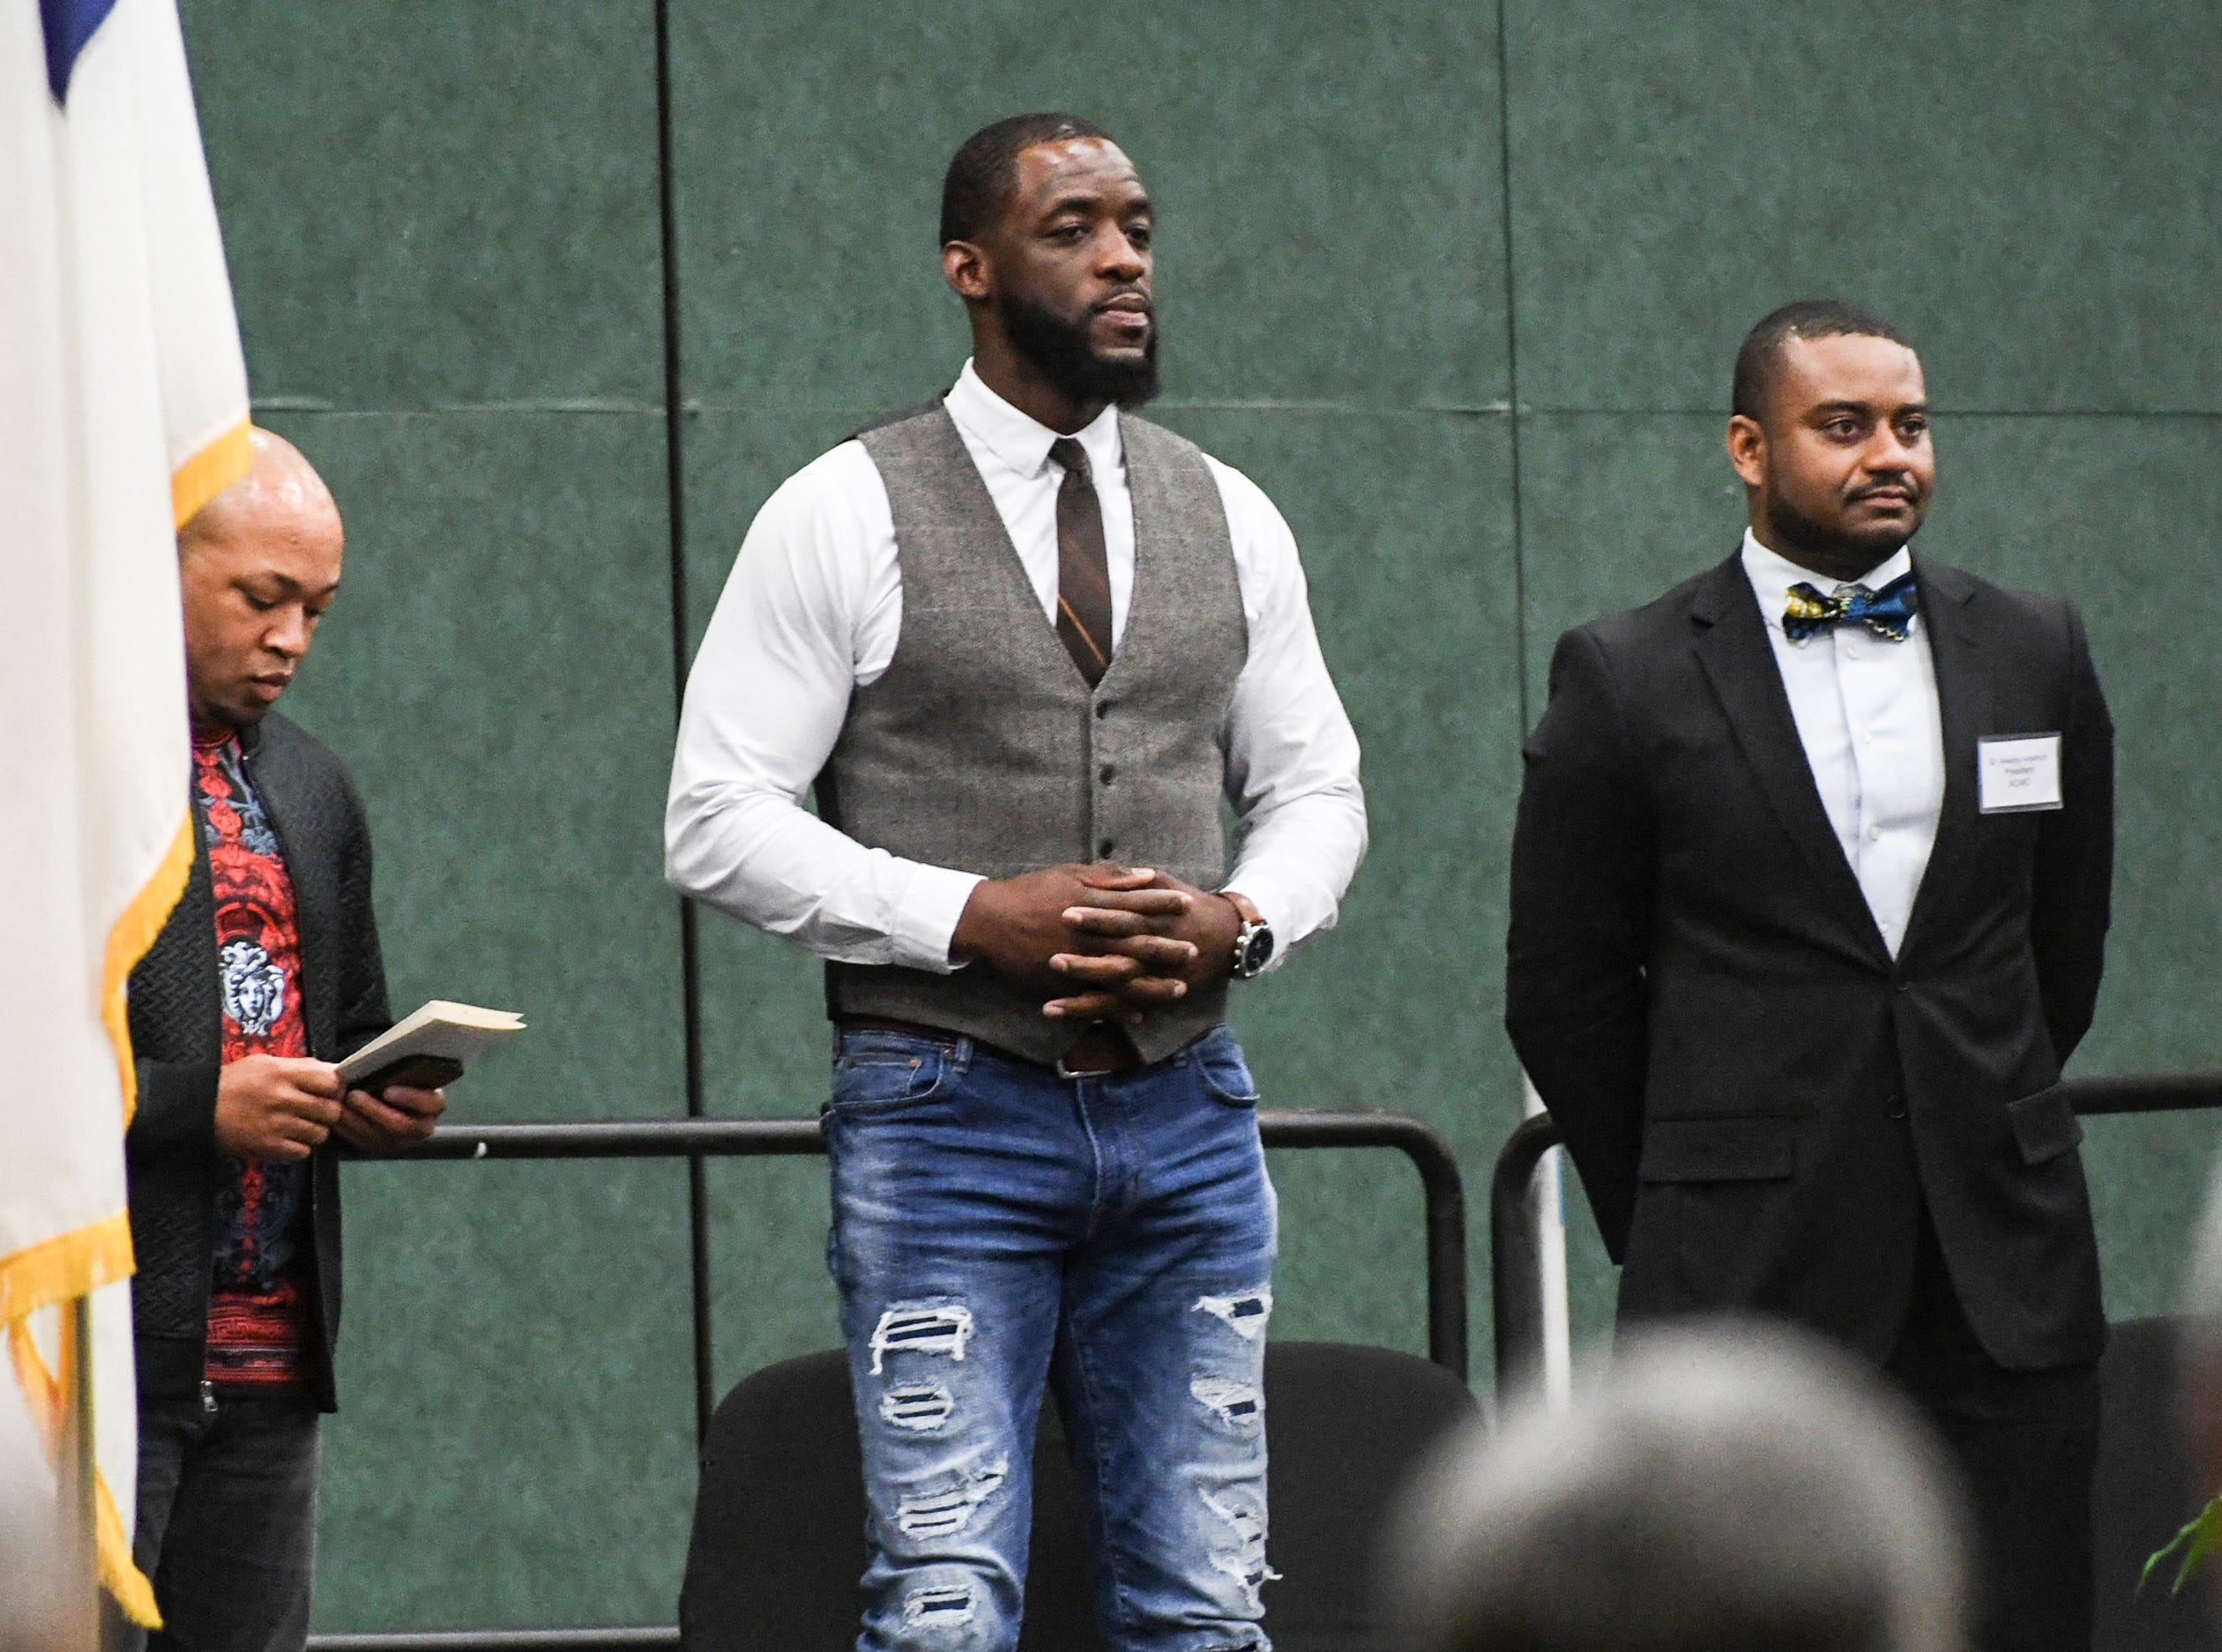 Rev. Lenny Gaines, left, of PowerHouse Christian Church, Cyrus Birch of Charleston, middle, an stunt performer as a Jabari warrior in Marvel Studio's Black Panther, and Dr. Ankoma Anderson, right, of Welfare Baptist Church, during the Anderson County Martin Luther King, Jr. Celebration in Anderson January 21, 2019.